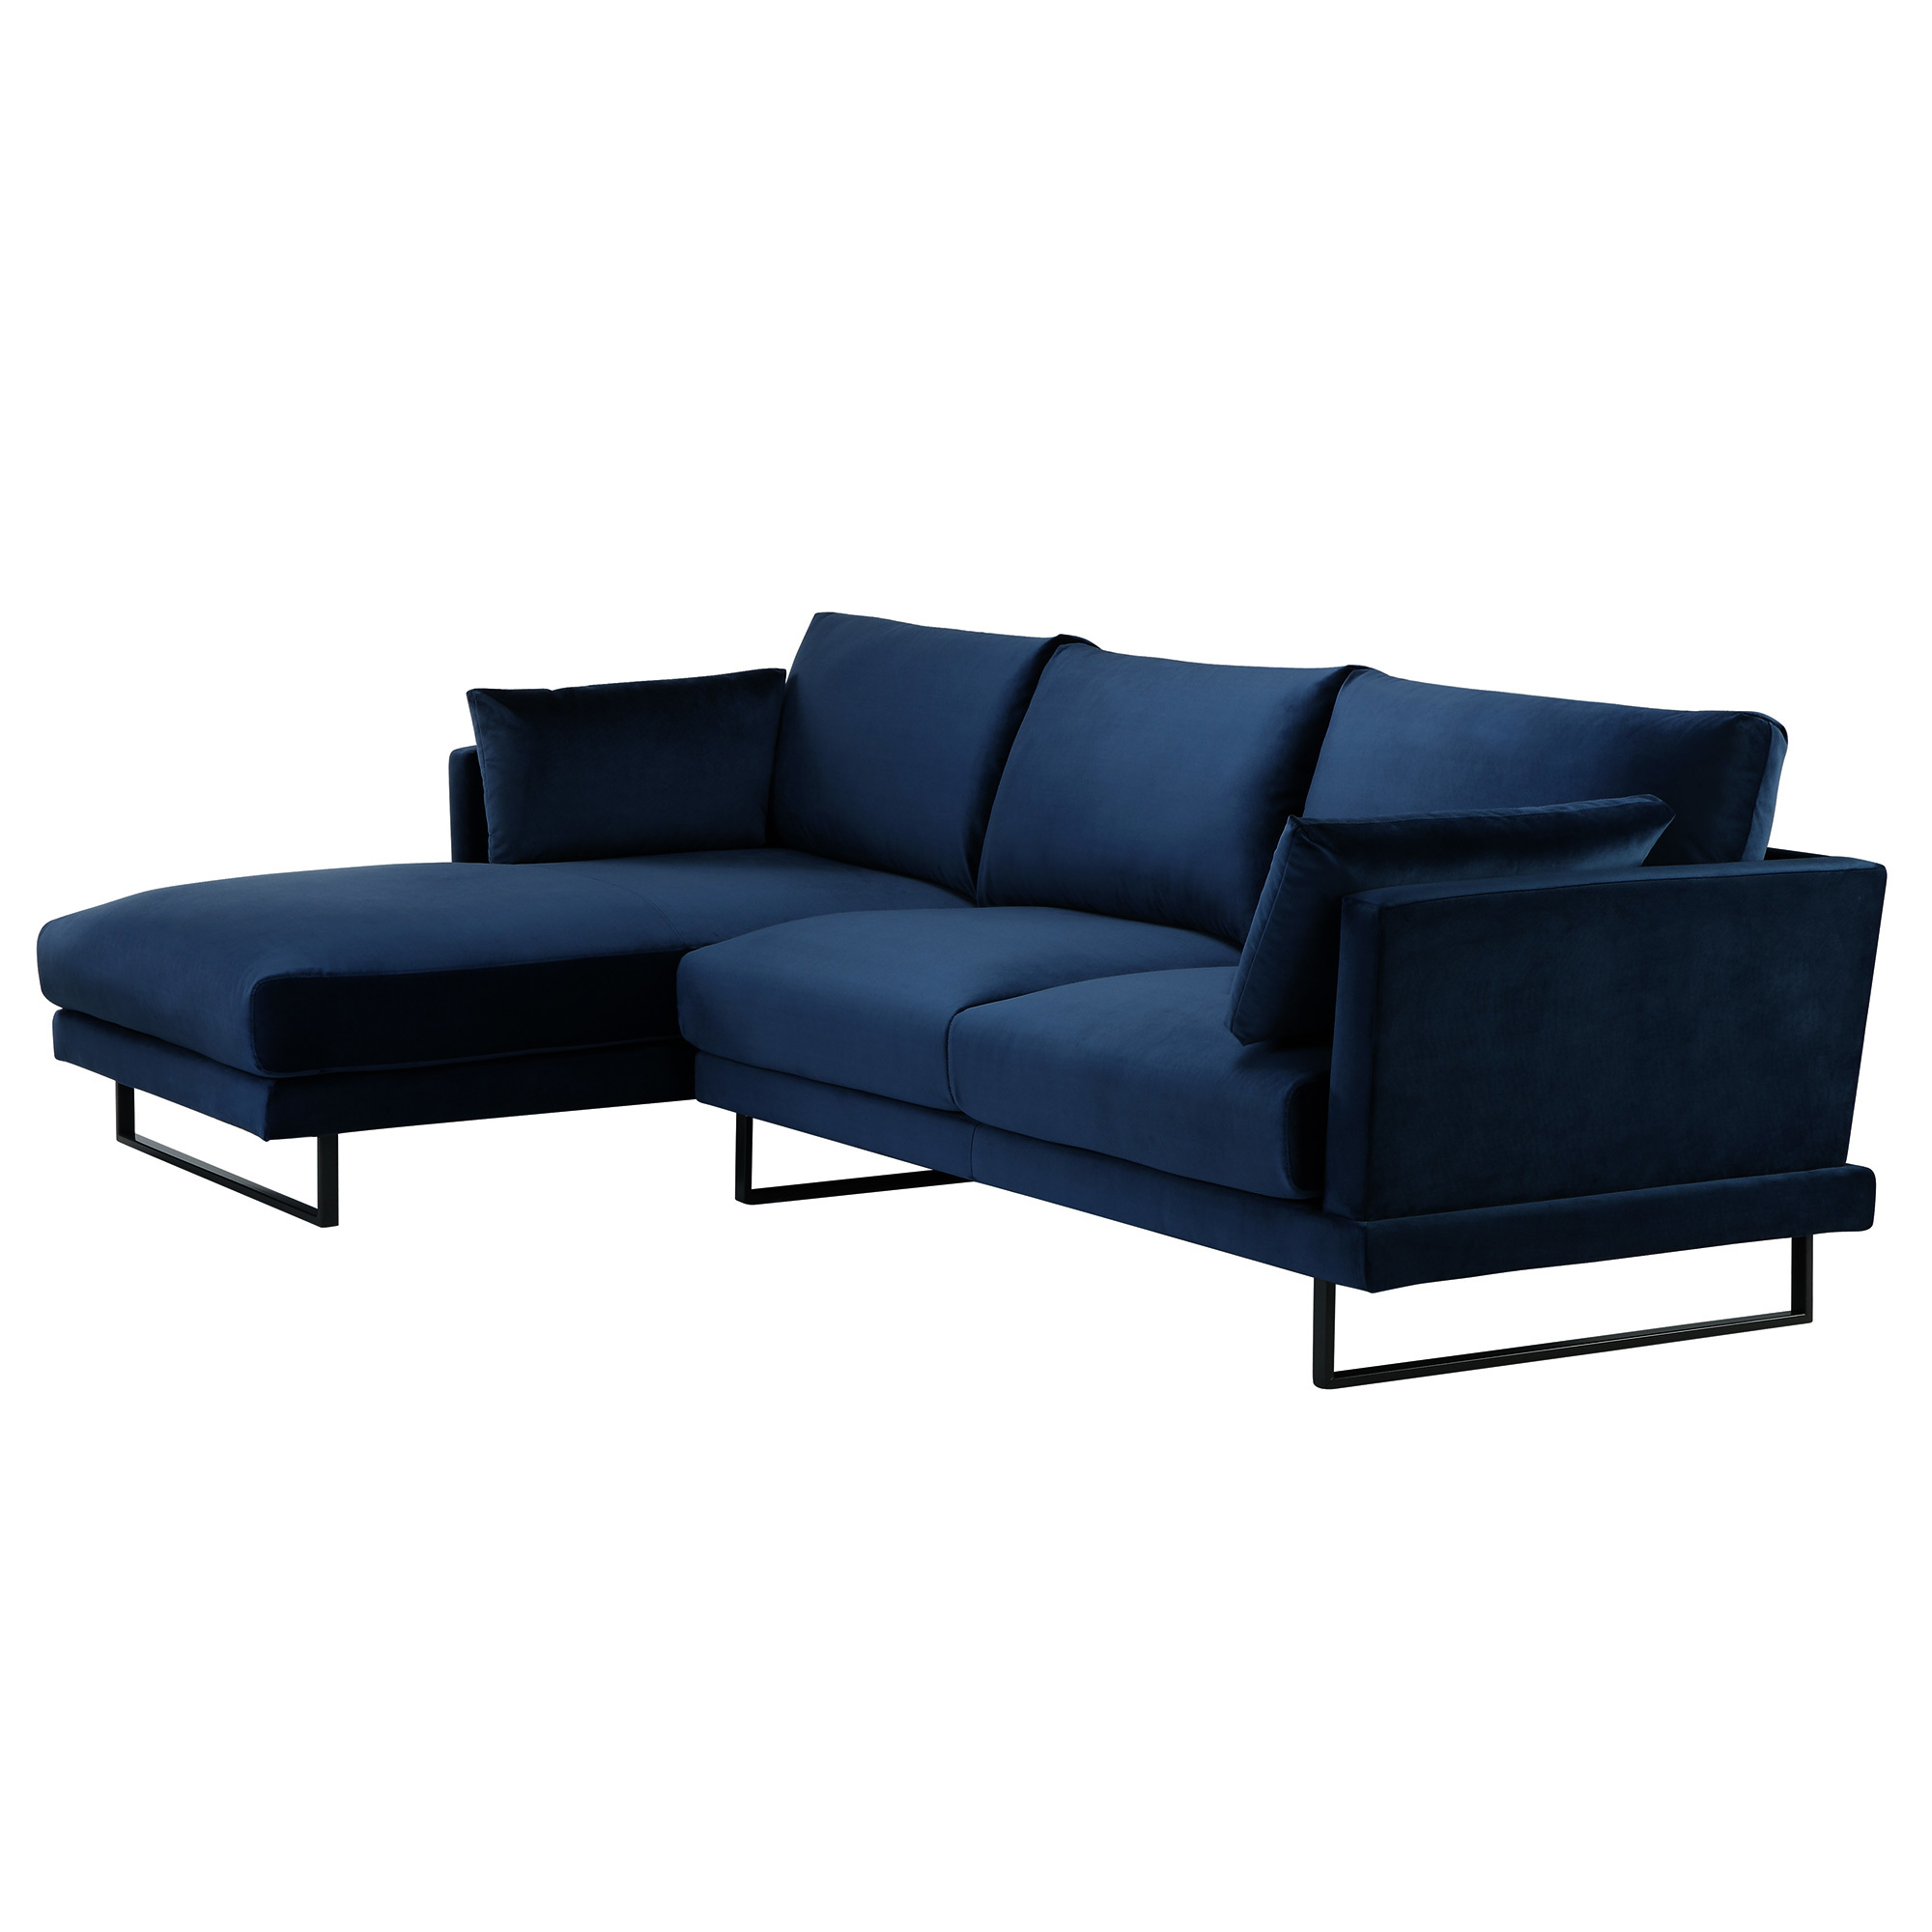 Sku #Tmpl1079 3 Seater Navy Velvet Zanda L Shaped Sofa Is